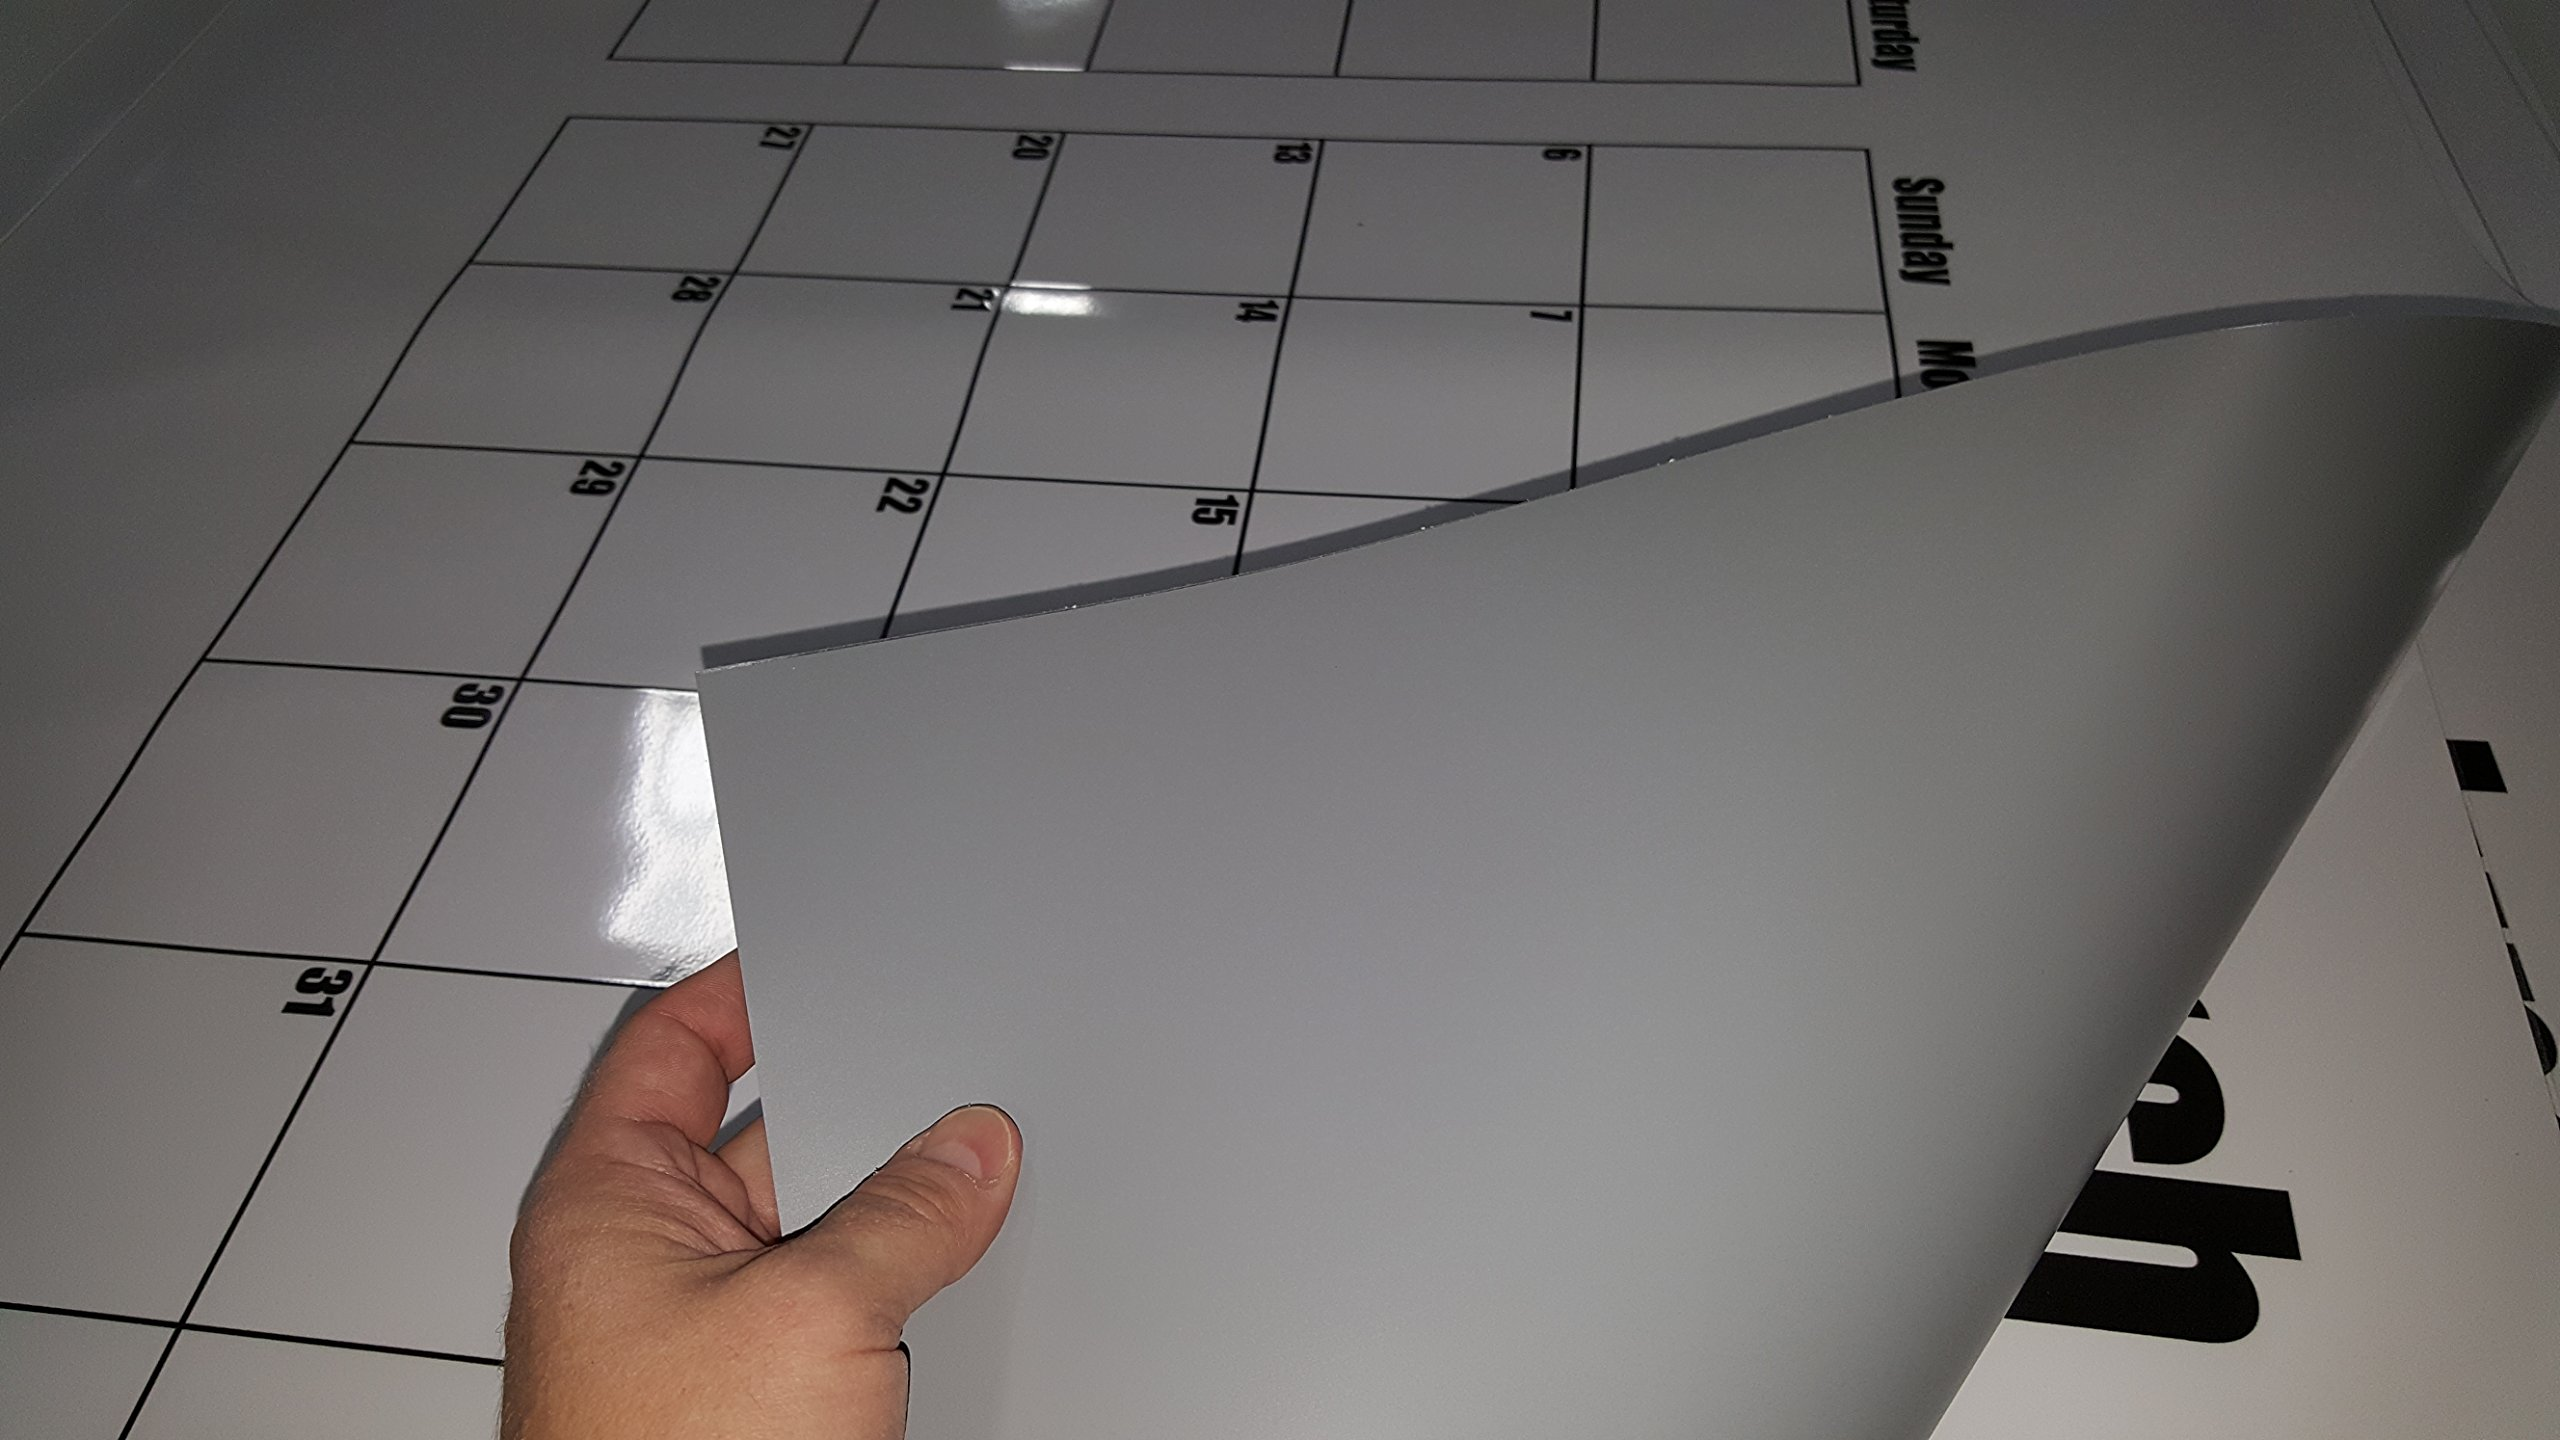 Dry Erase Julian Date Calendar - 36 x 72 Large Dry Erase Wall Calendar - Large Wall Calendar - Reusable Annual Calendar - Wall Planner with Vertical Dates and Horizontal Months by Oversize Planner by ABI Digital Solutions (Image #7)